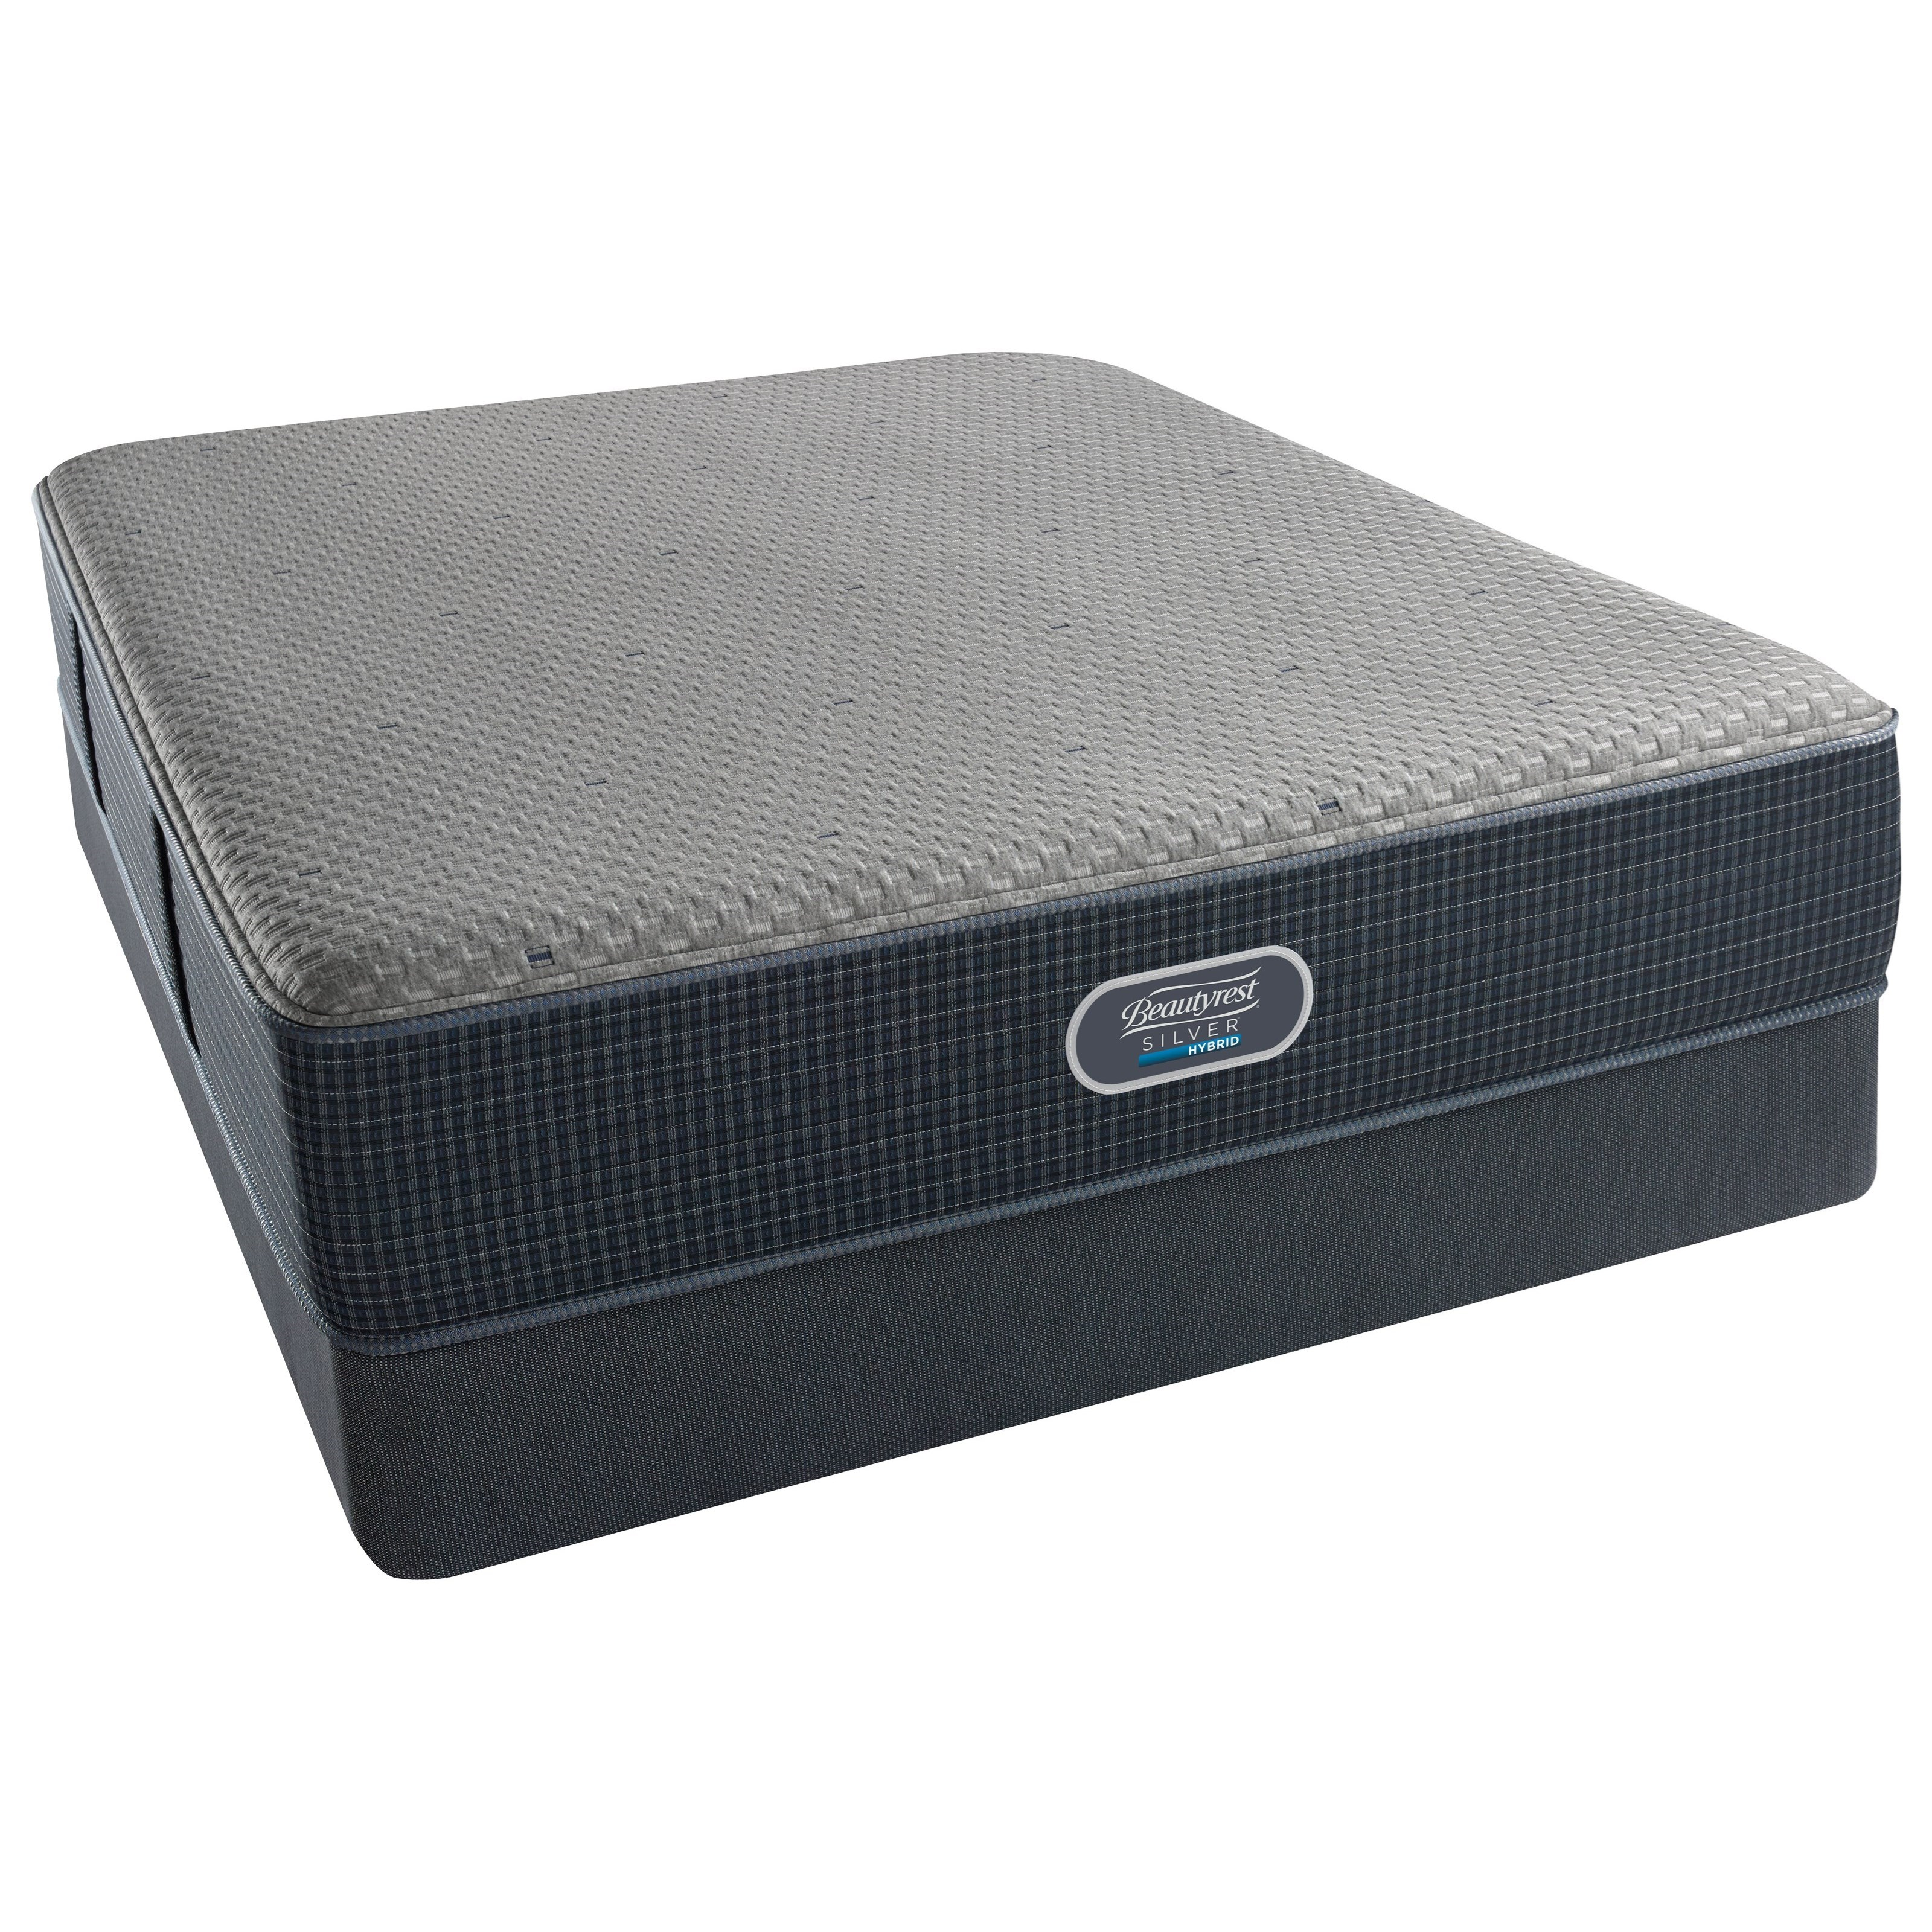 Beautyrest Silver Hybrid Beachwood Luxury Firm Beautyrest Silver Twin Low Profile Set - Item Number: 700601000-1010+700600254-6010